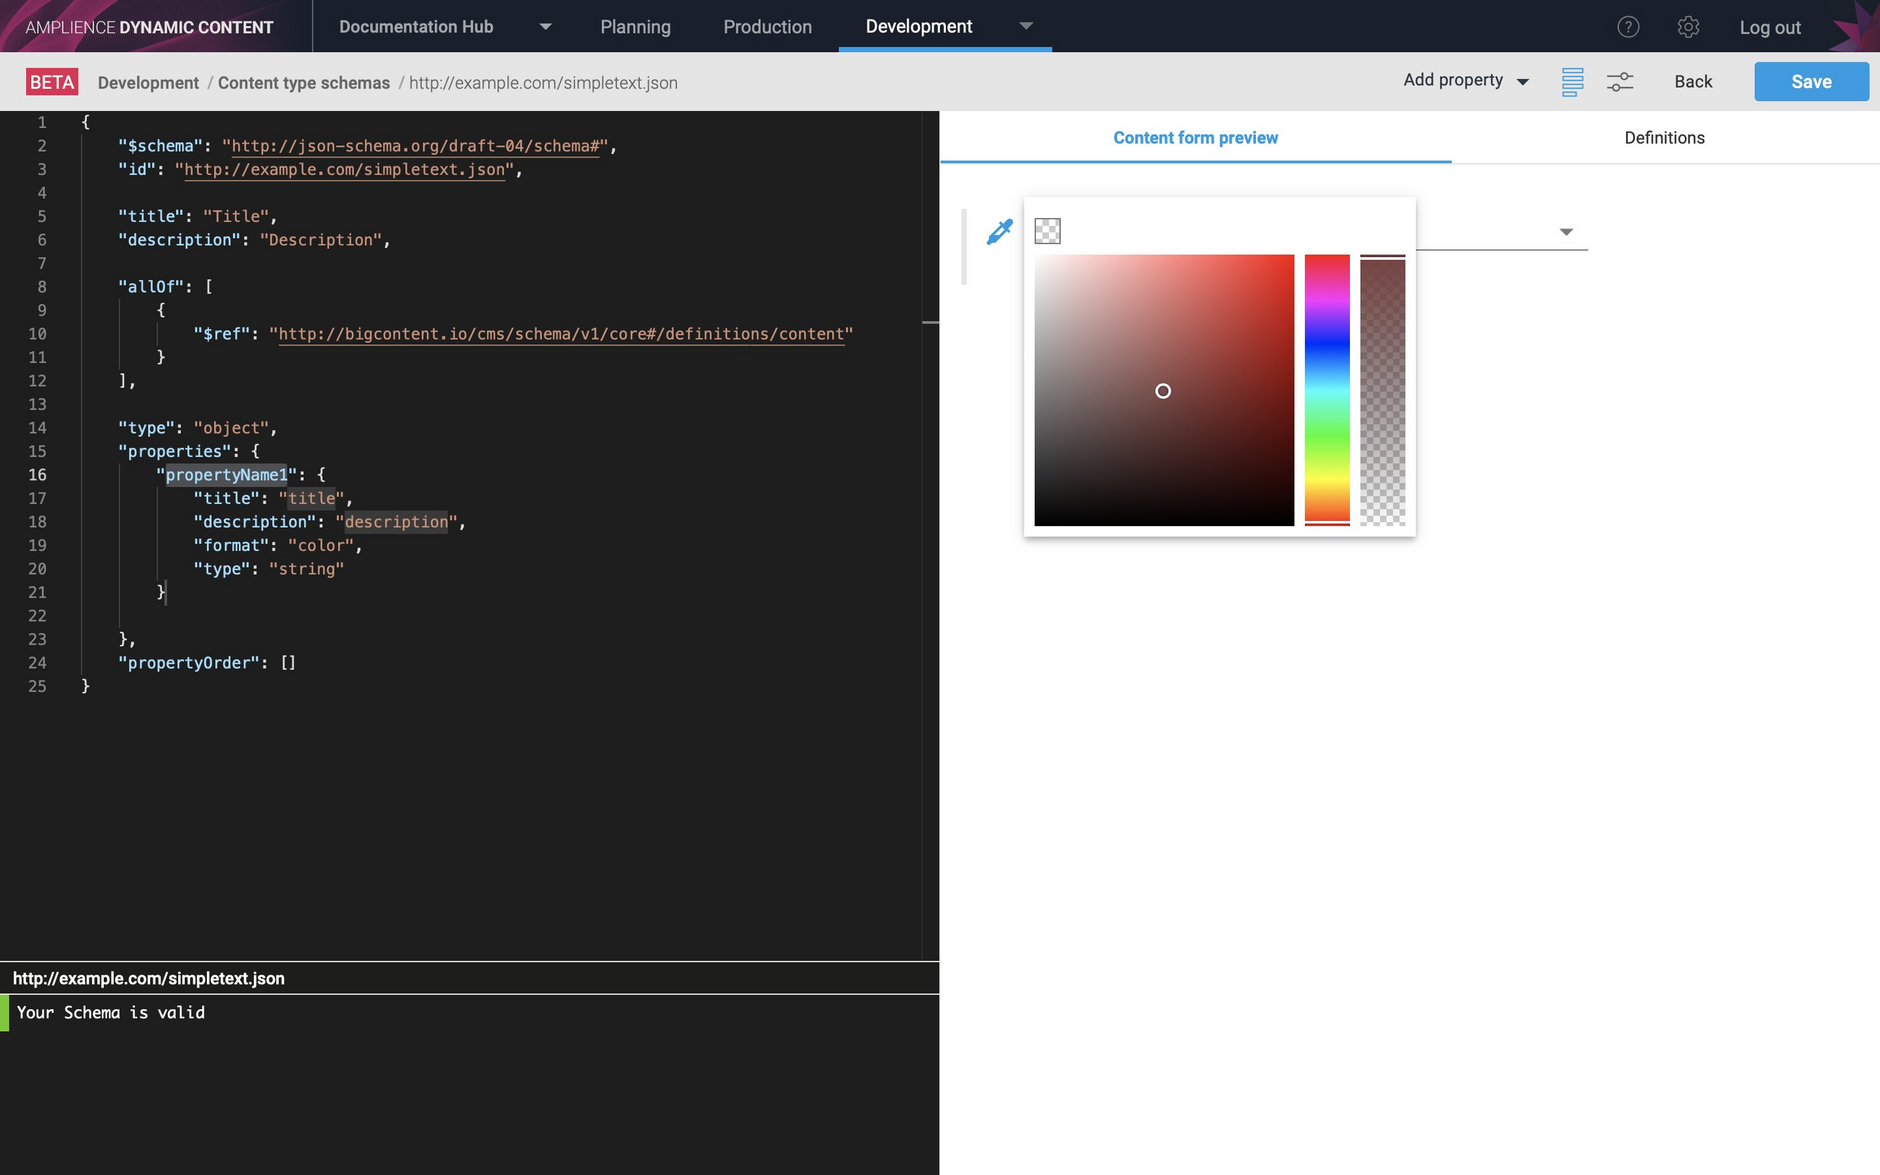 The color picker is shown when the property is previewed